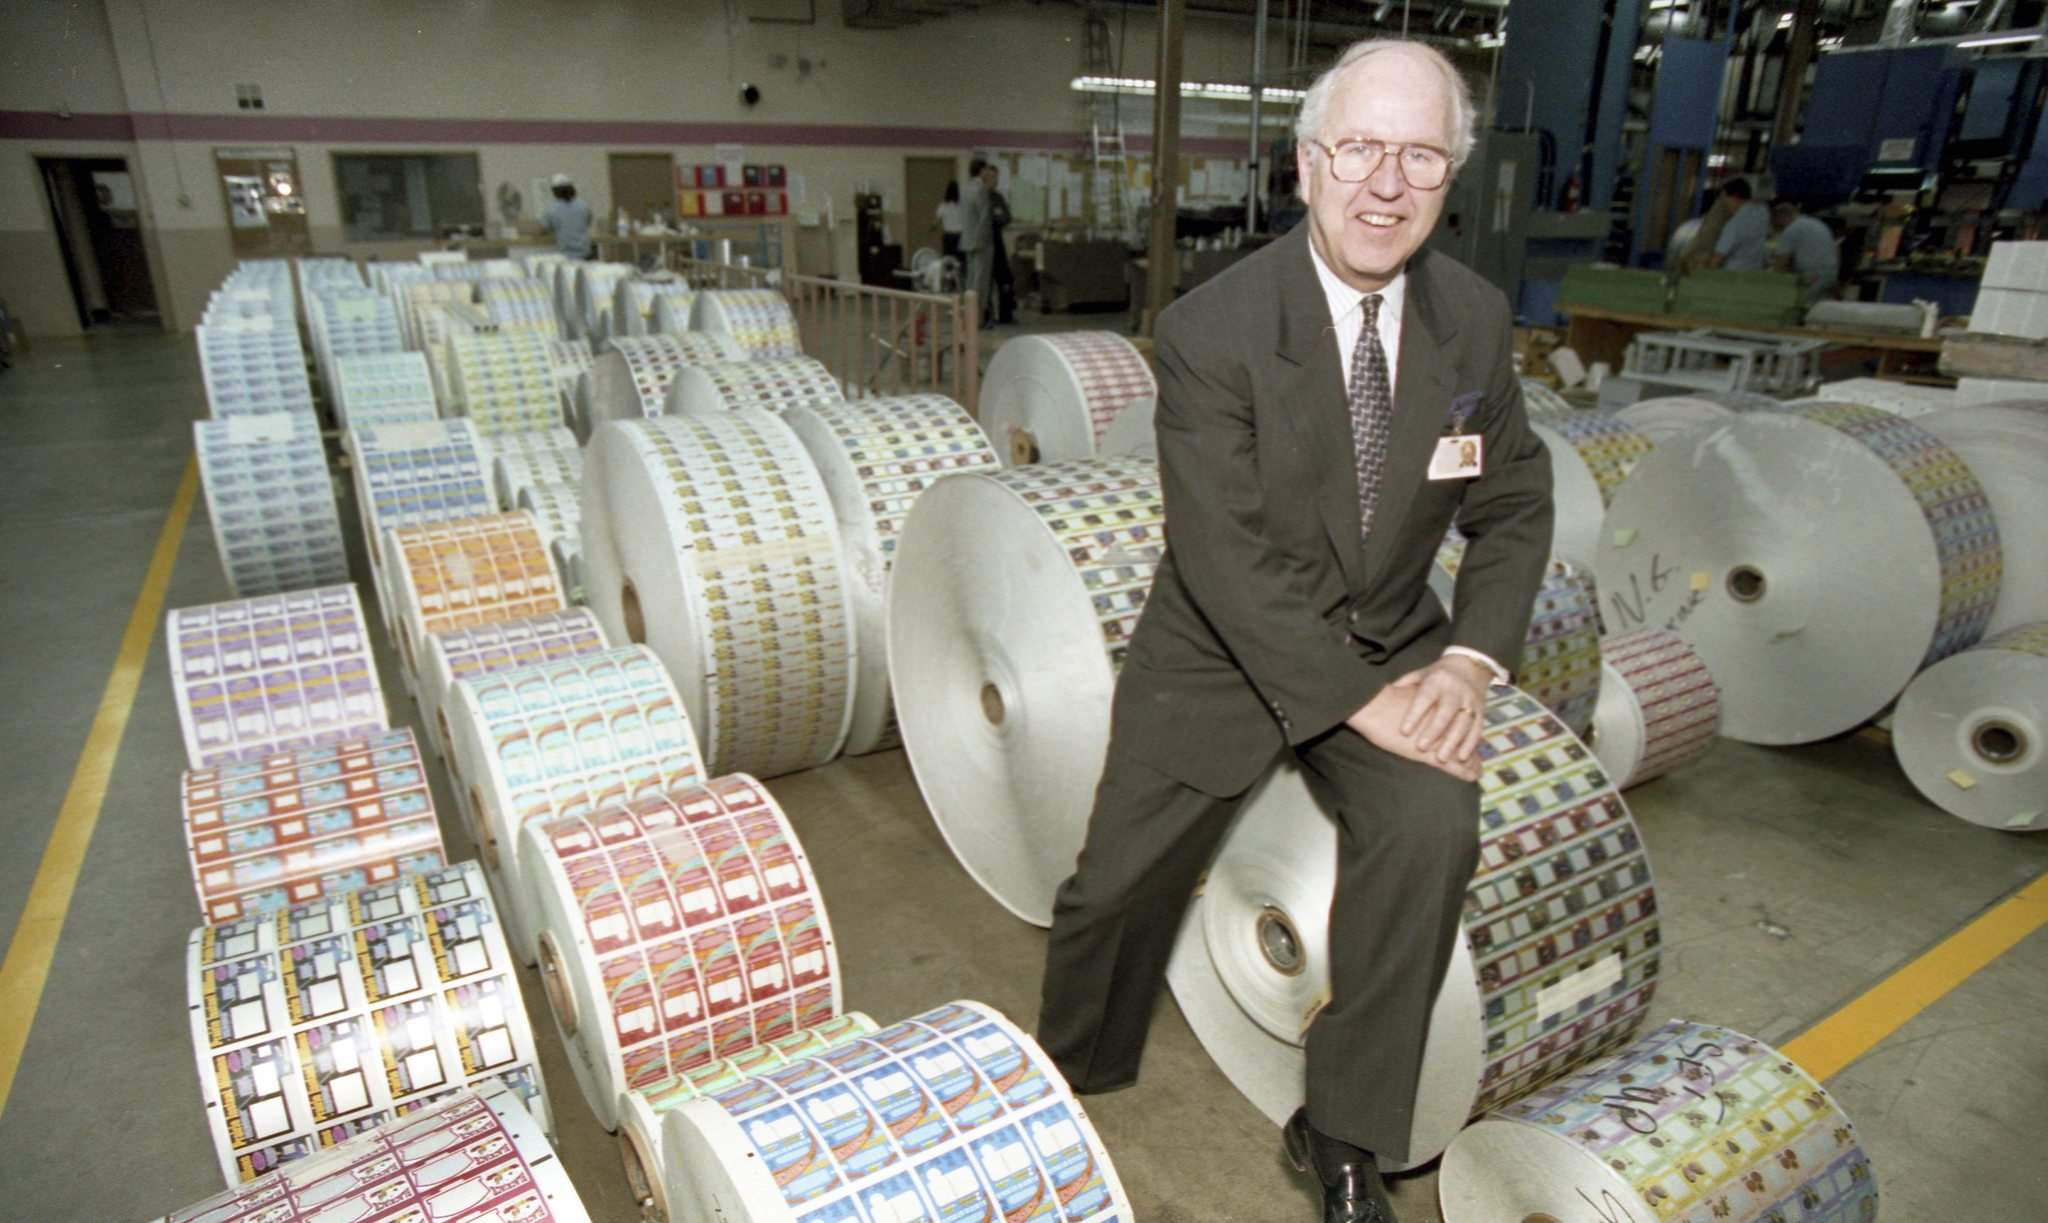 MARC GALLANT / WINNIPEG FREE PRESS FILES</p><p>Decades after Lawrie Pollard shifted his focus to printing lottery tickets, Pollard Banknote employs more than 1,100 people.